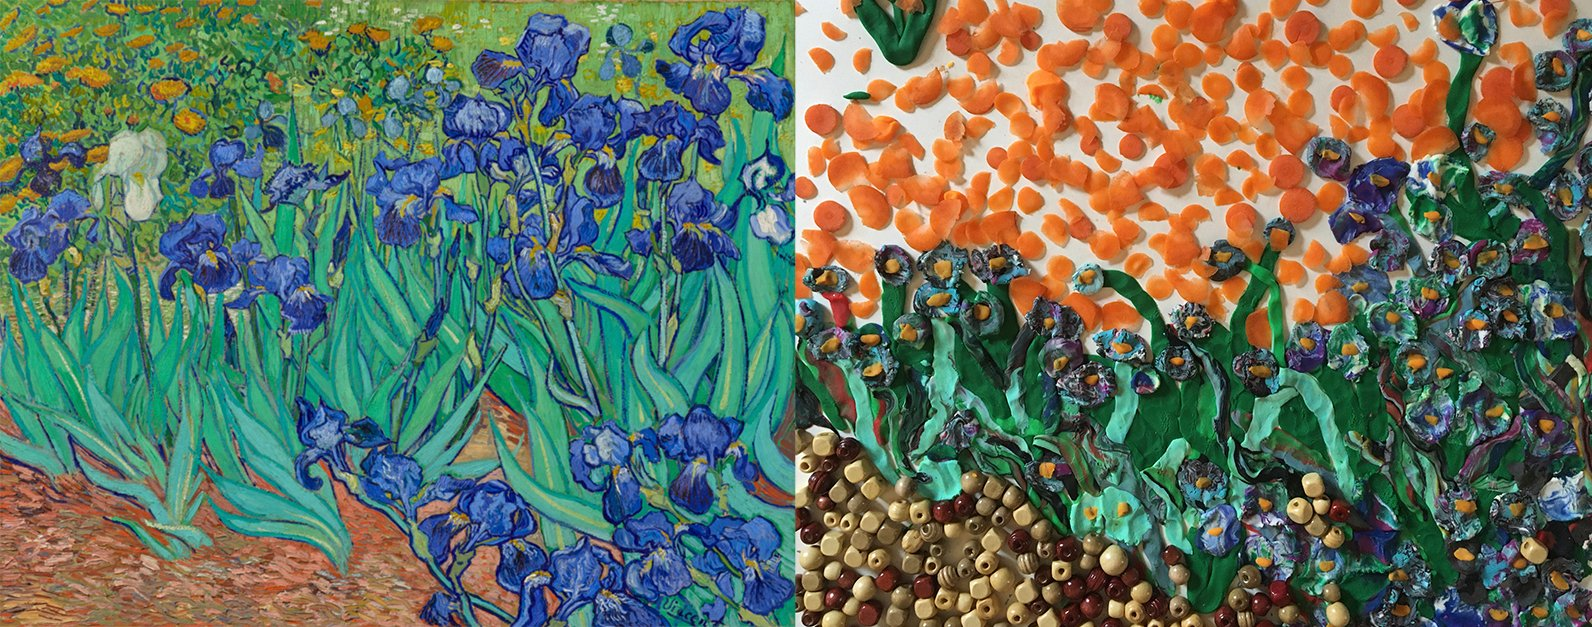 Van Gogh's Irises on the left--purple flowers with bright green stems. Mixed media recreation on the right.